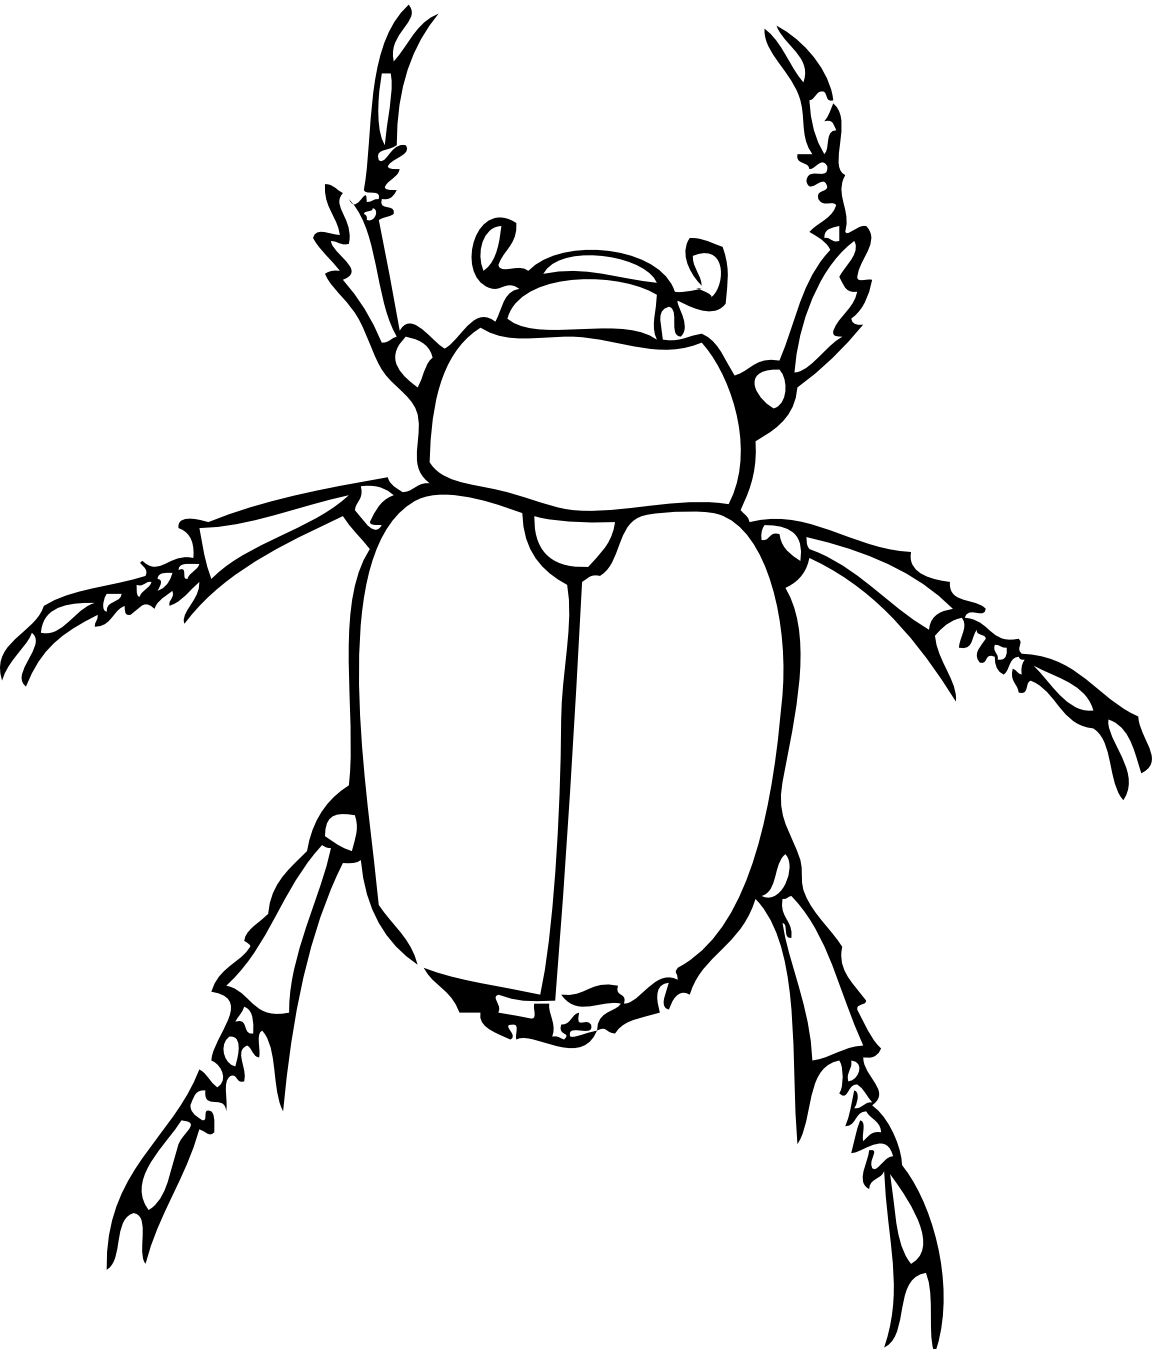 drawing insects bug